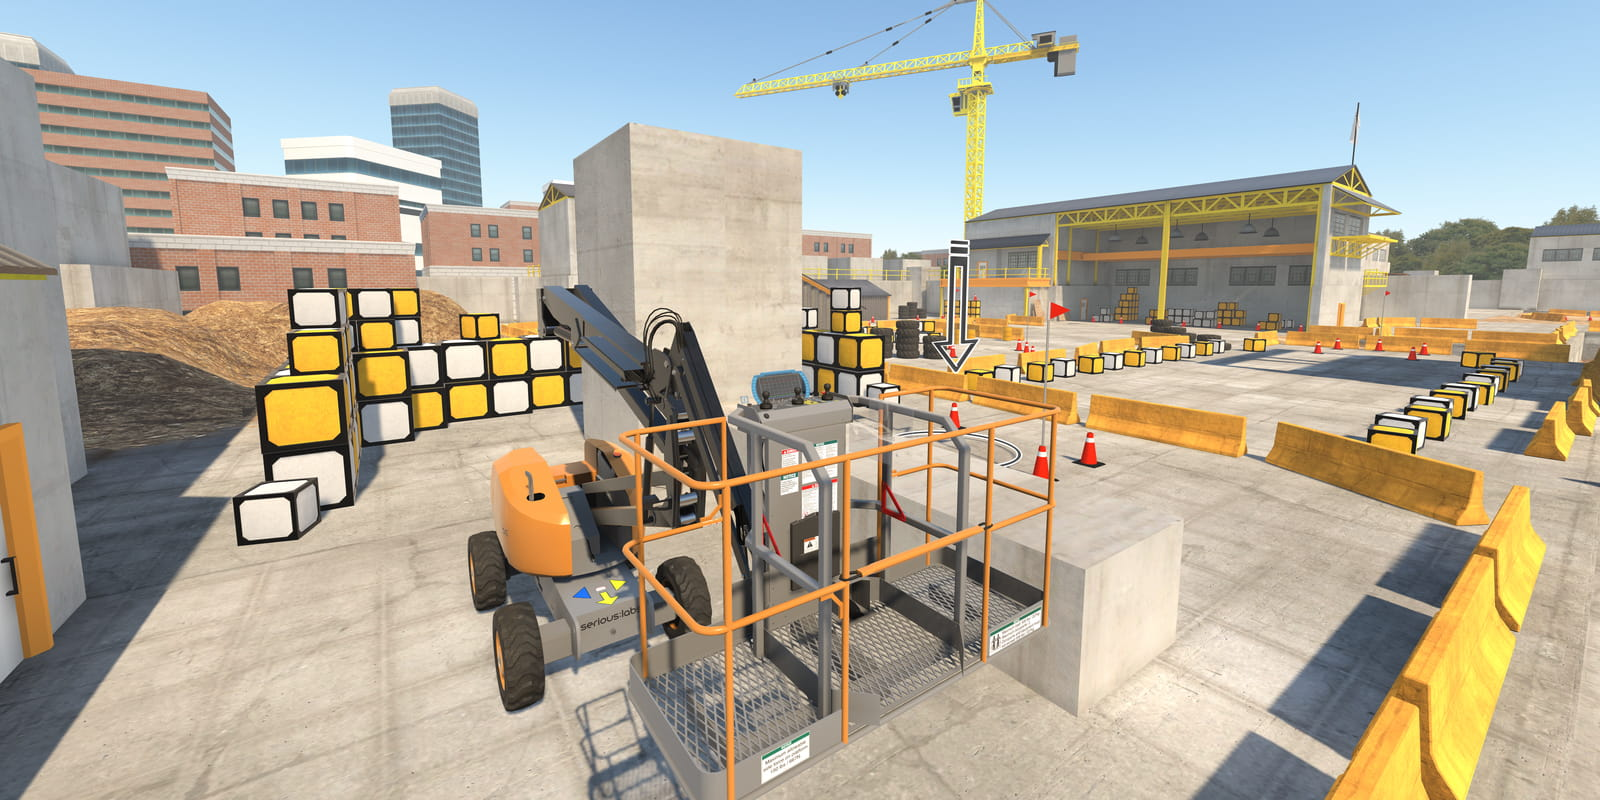 Virtual Reality device for aerial work platform training